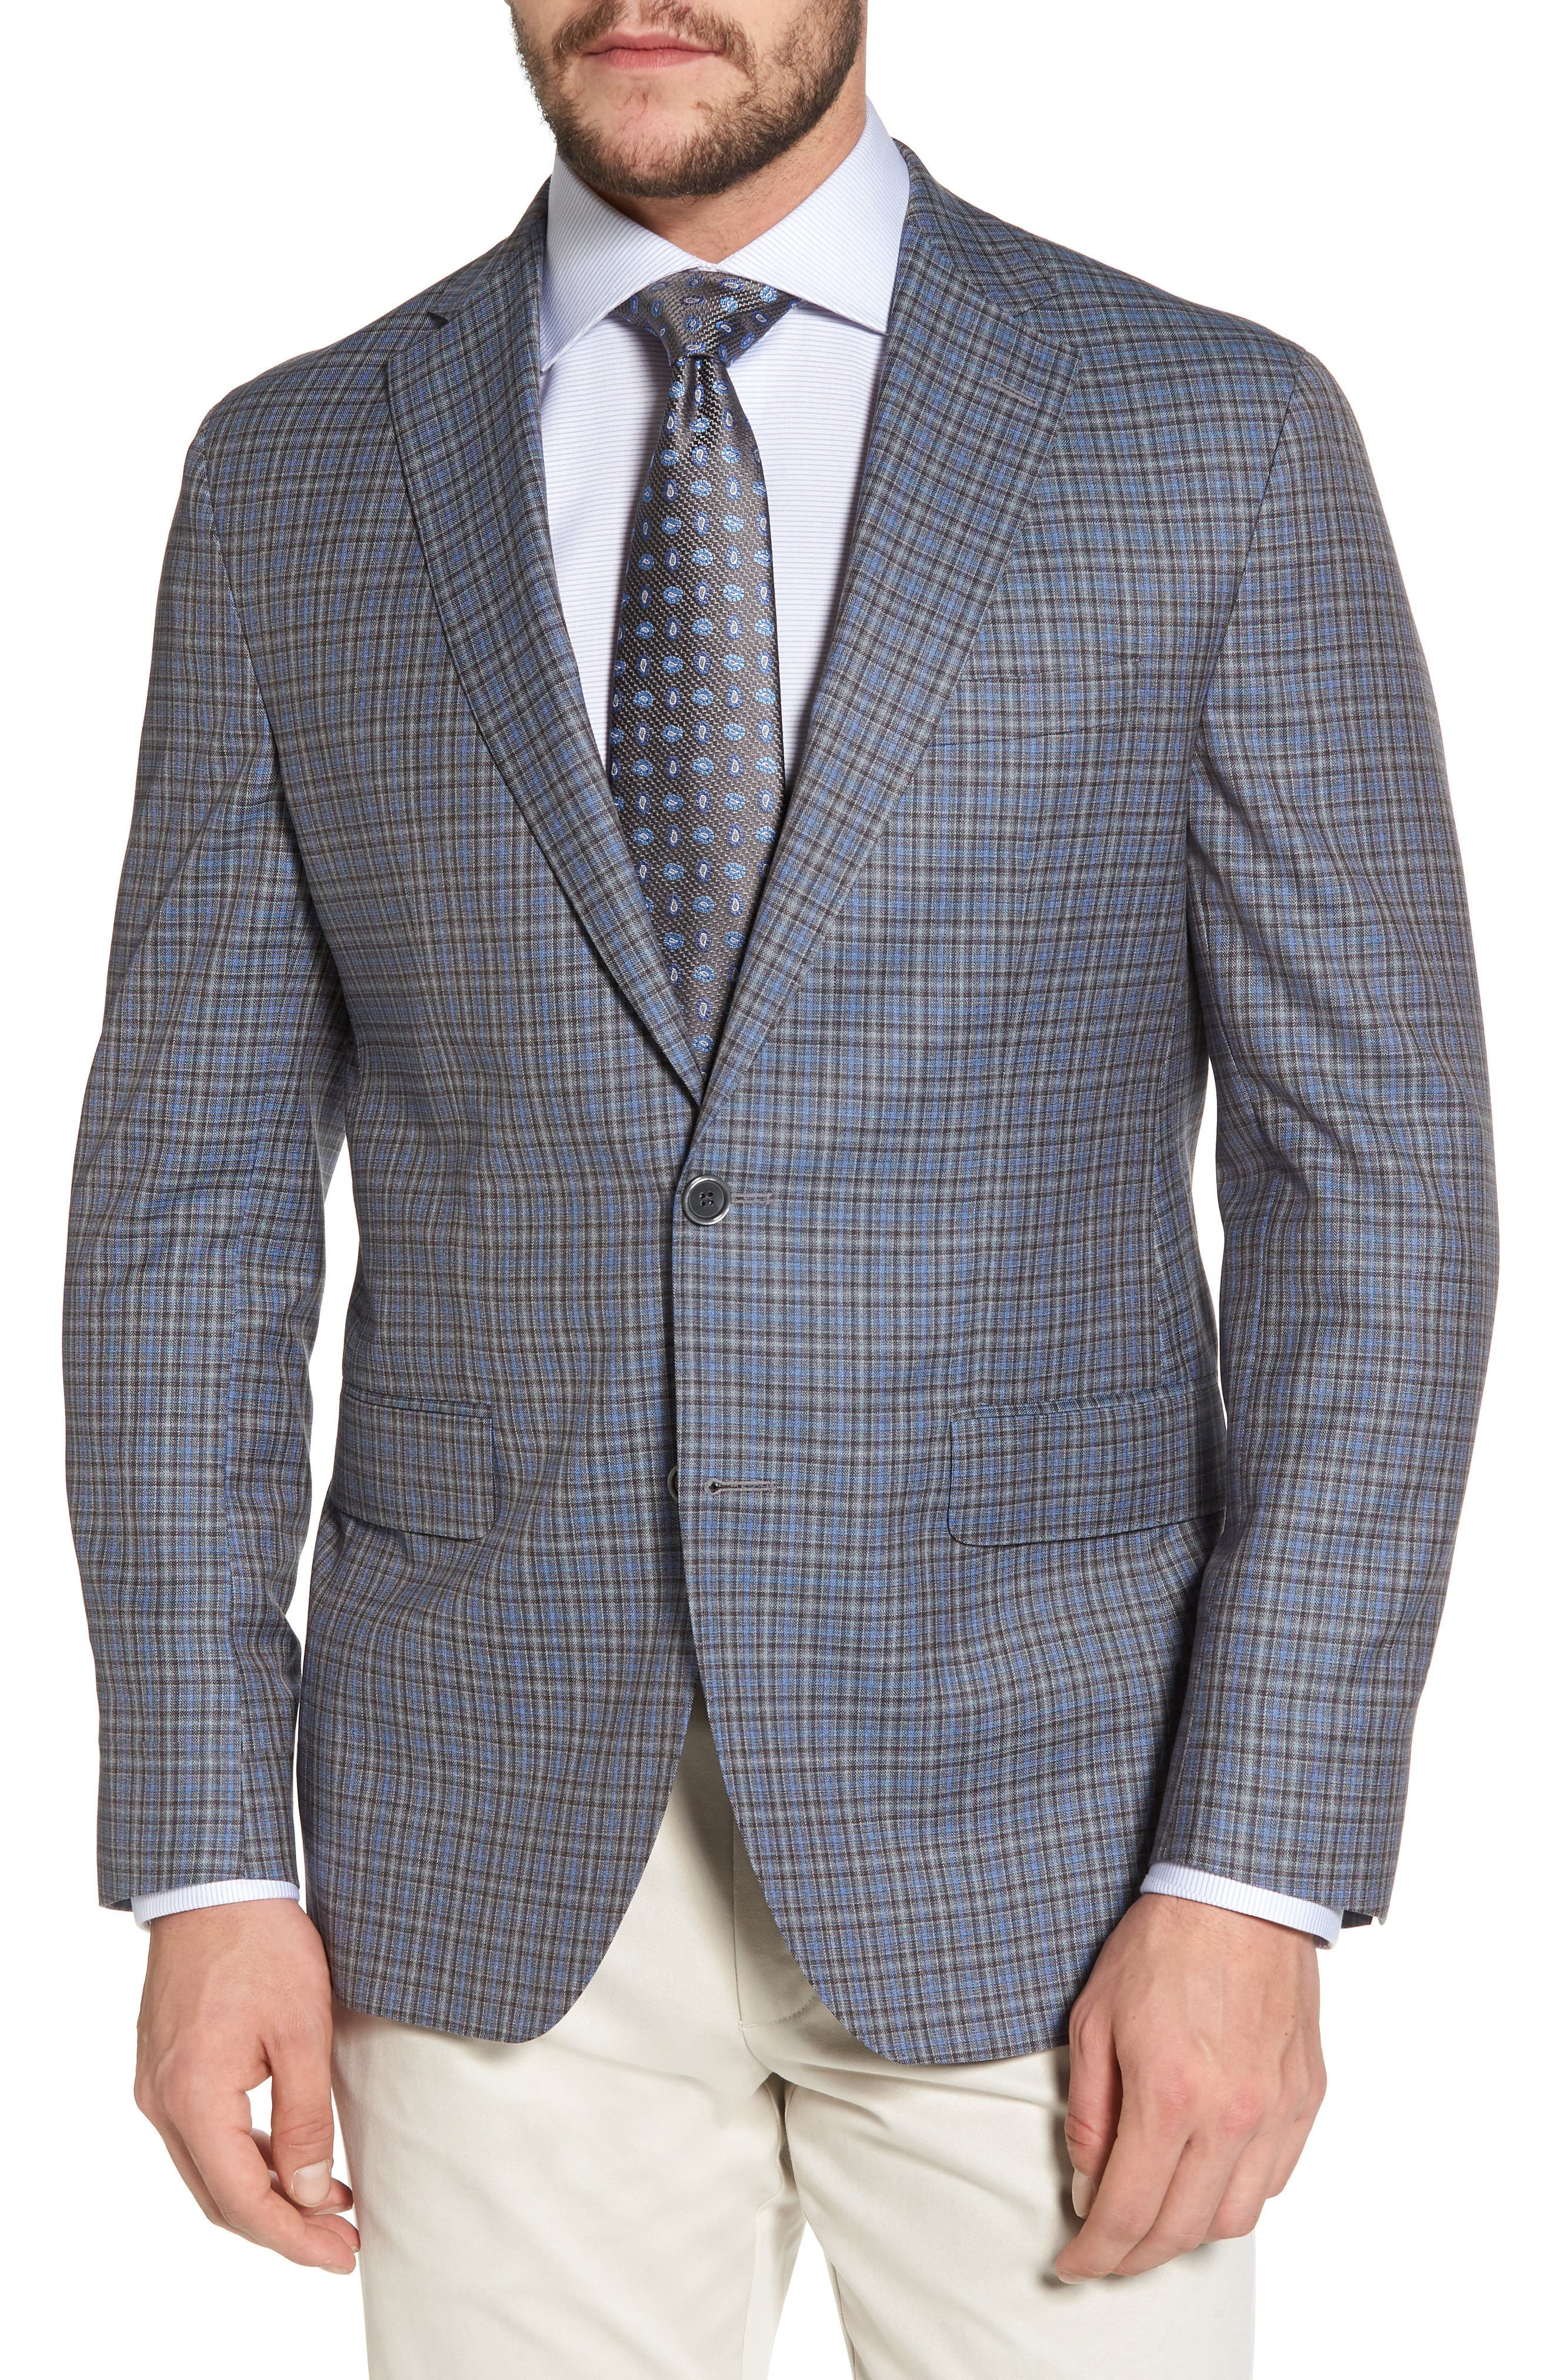 Arnold Classic Fit Sport Coat,                         Main,                         color, 020